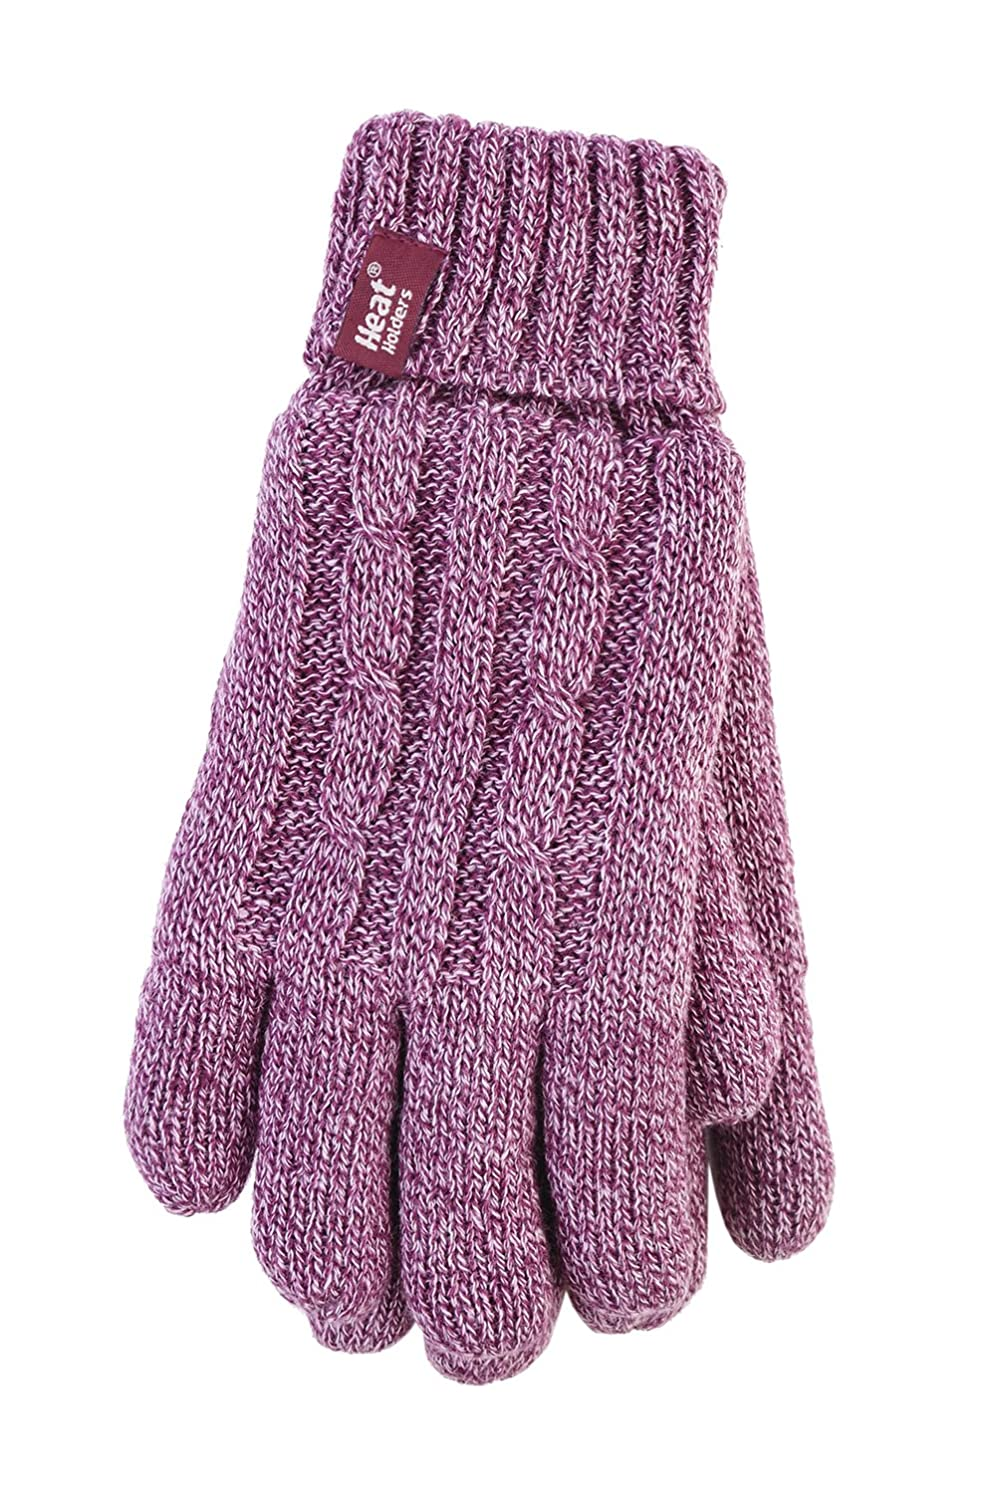 Heat Holders - Thermal Winter Knitted Insulated Gloves for Women - S/M